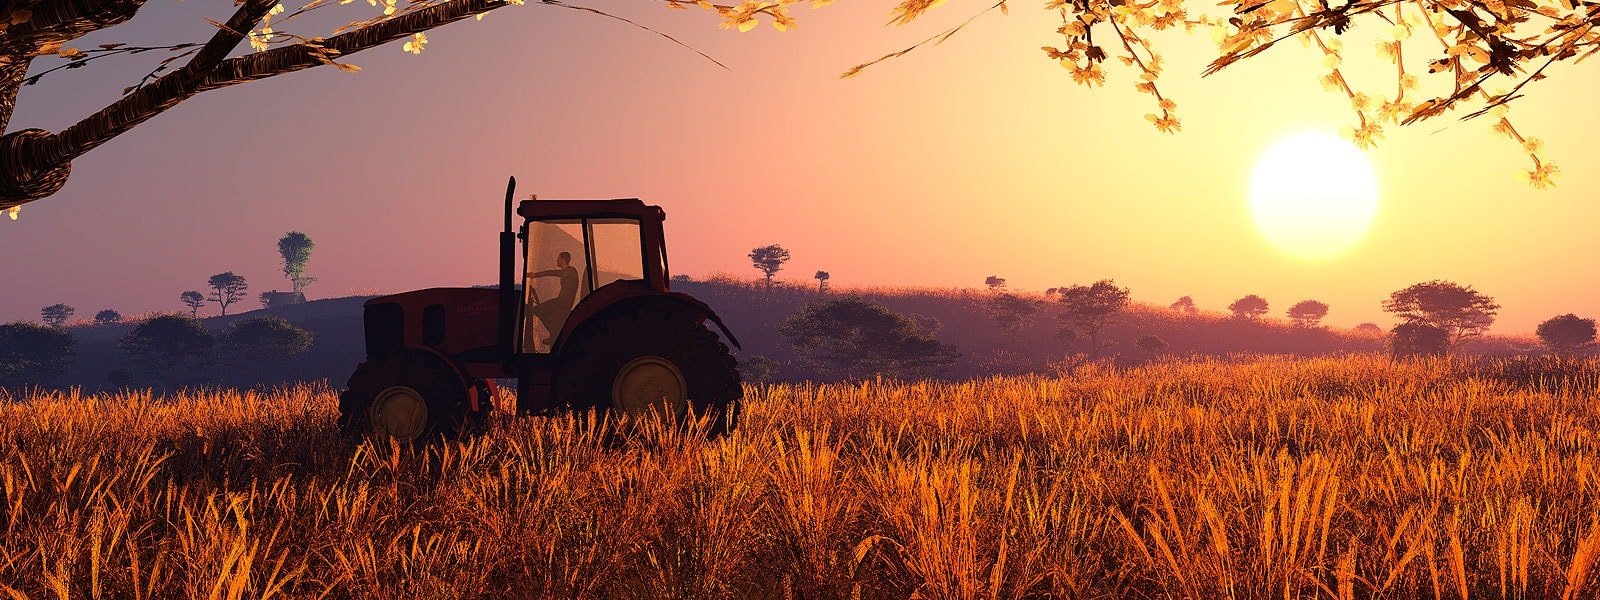 Farm Truck and Sunset